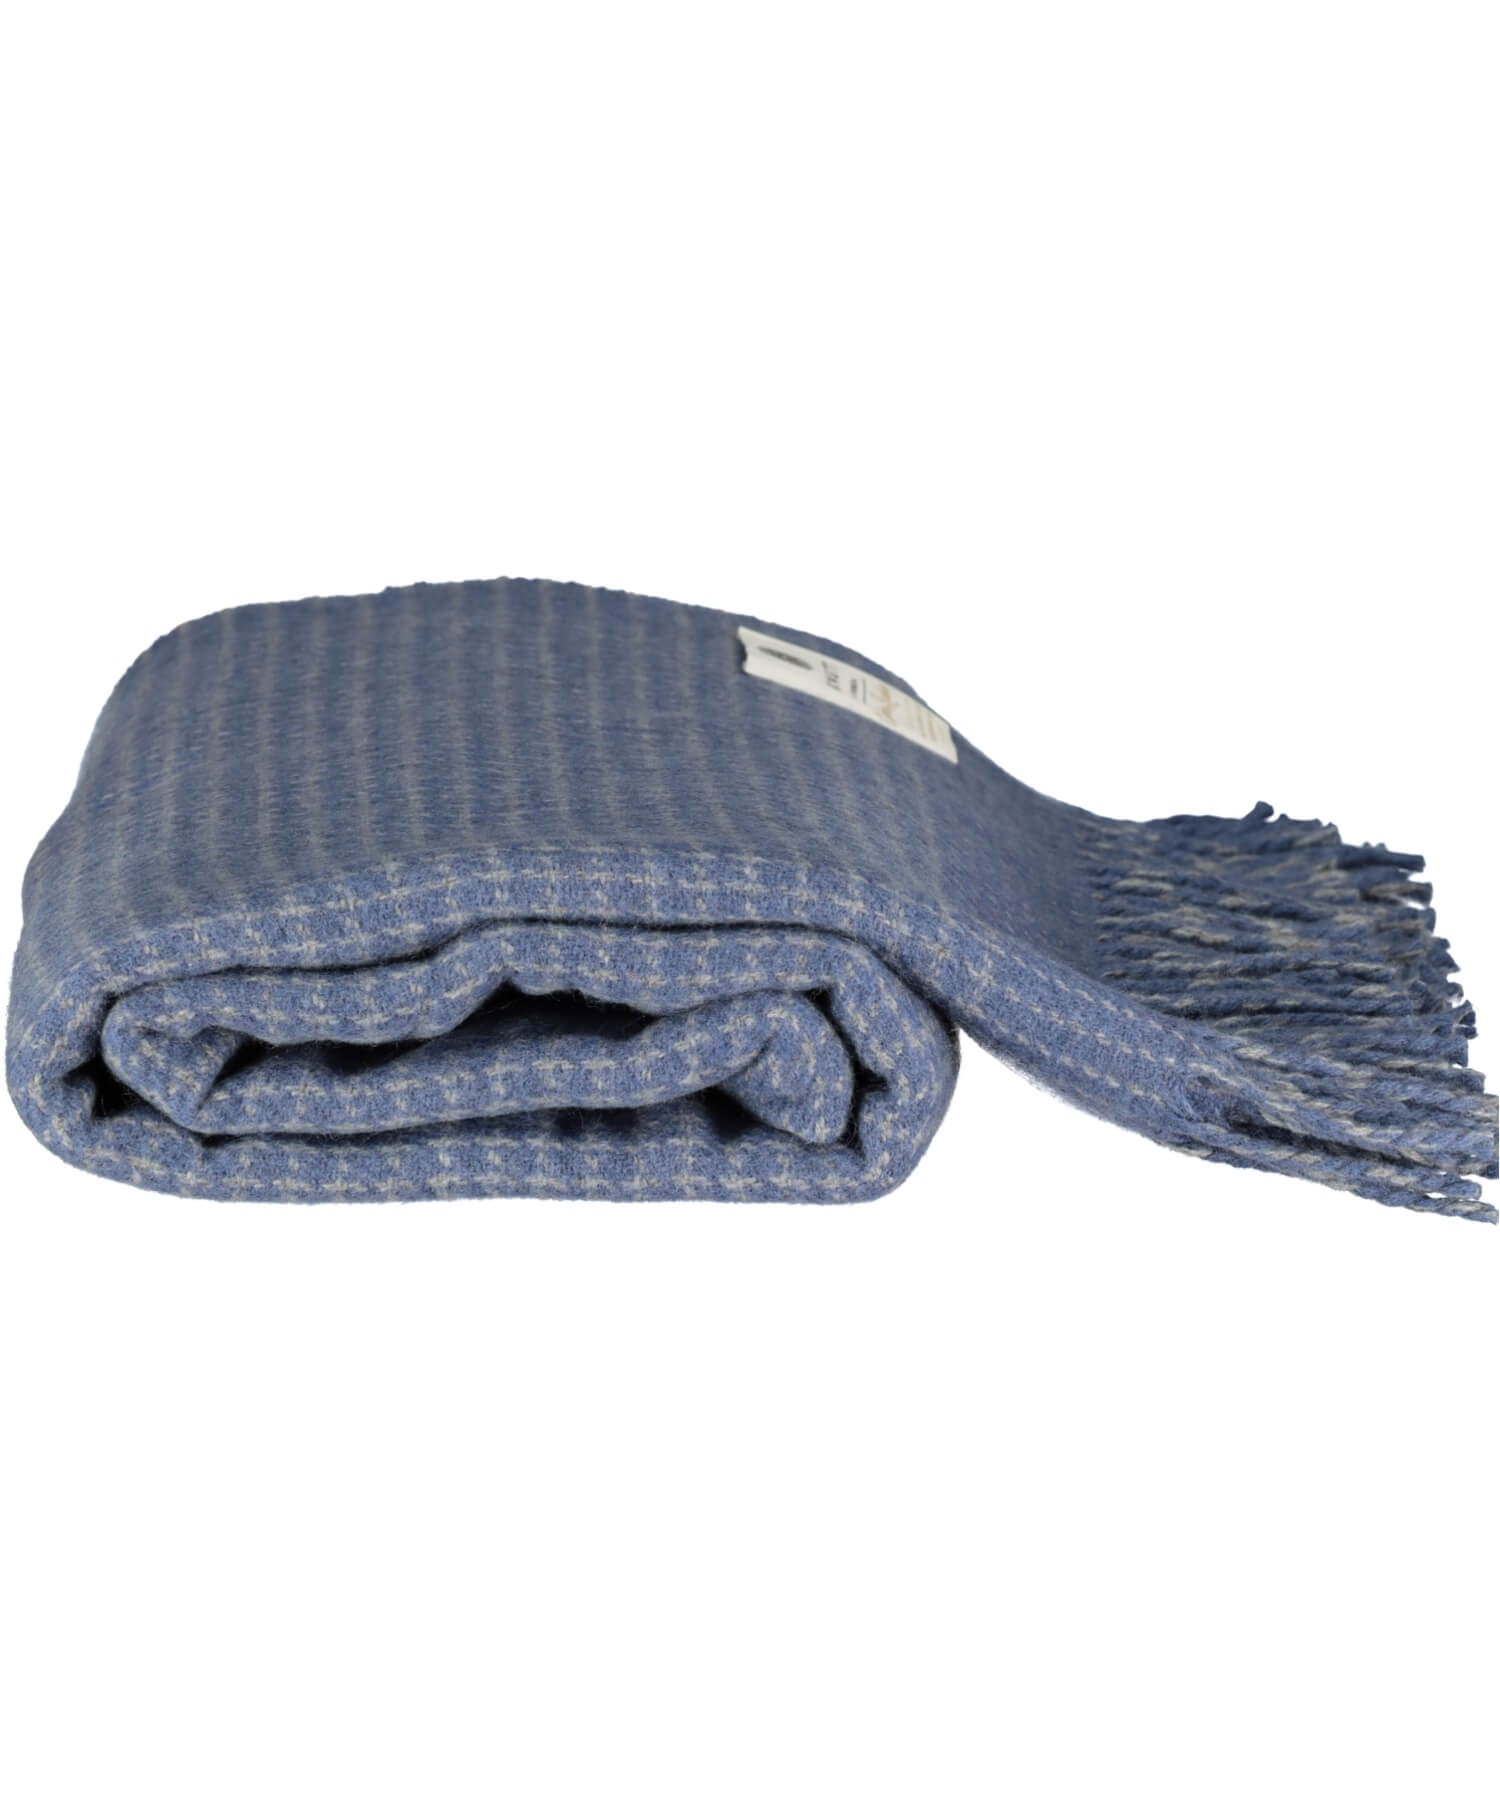 Cashmere Lambswool Throw - Stream - [McNutts] - Throws & Cushions - Irish Gifts